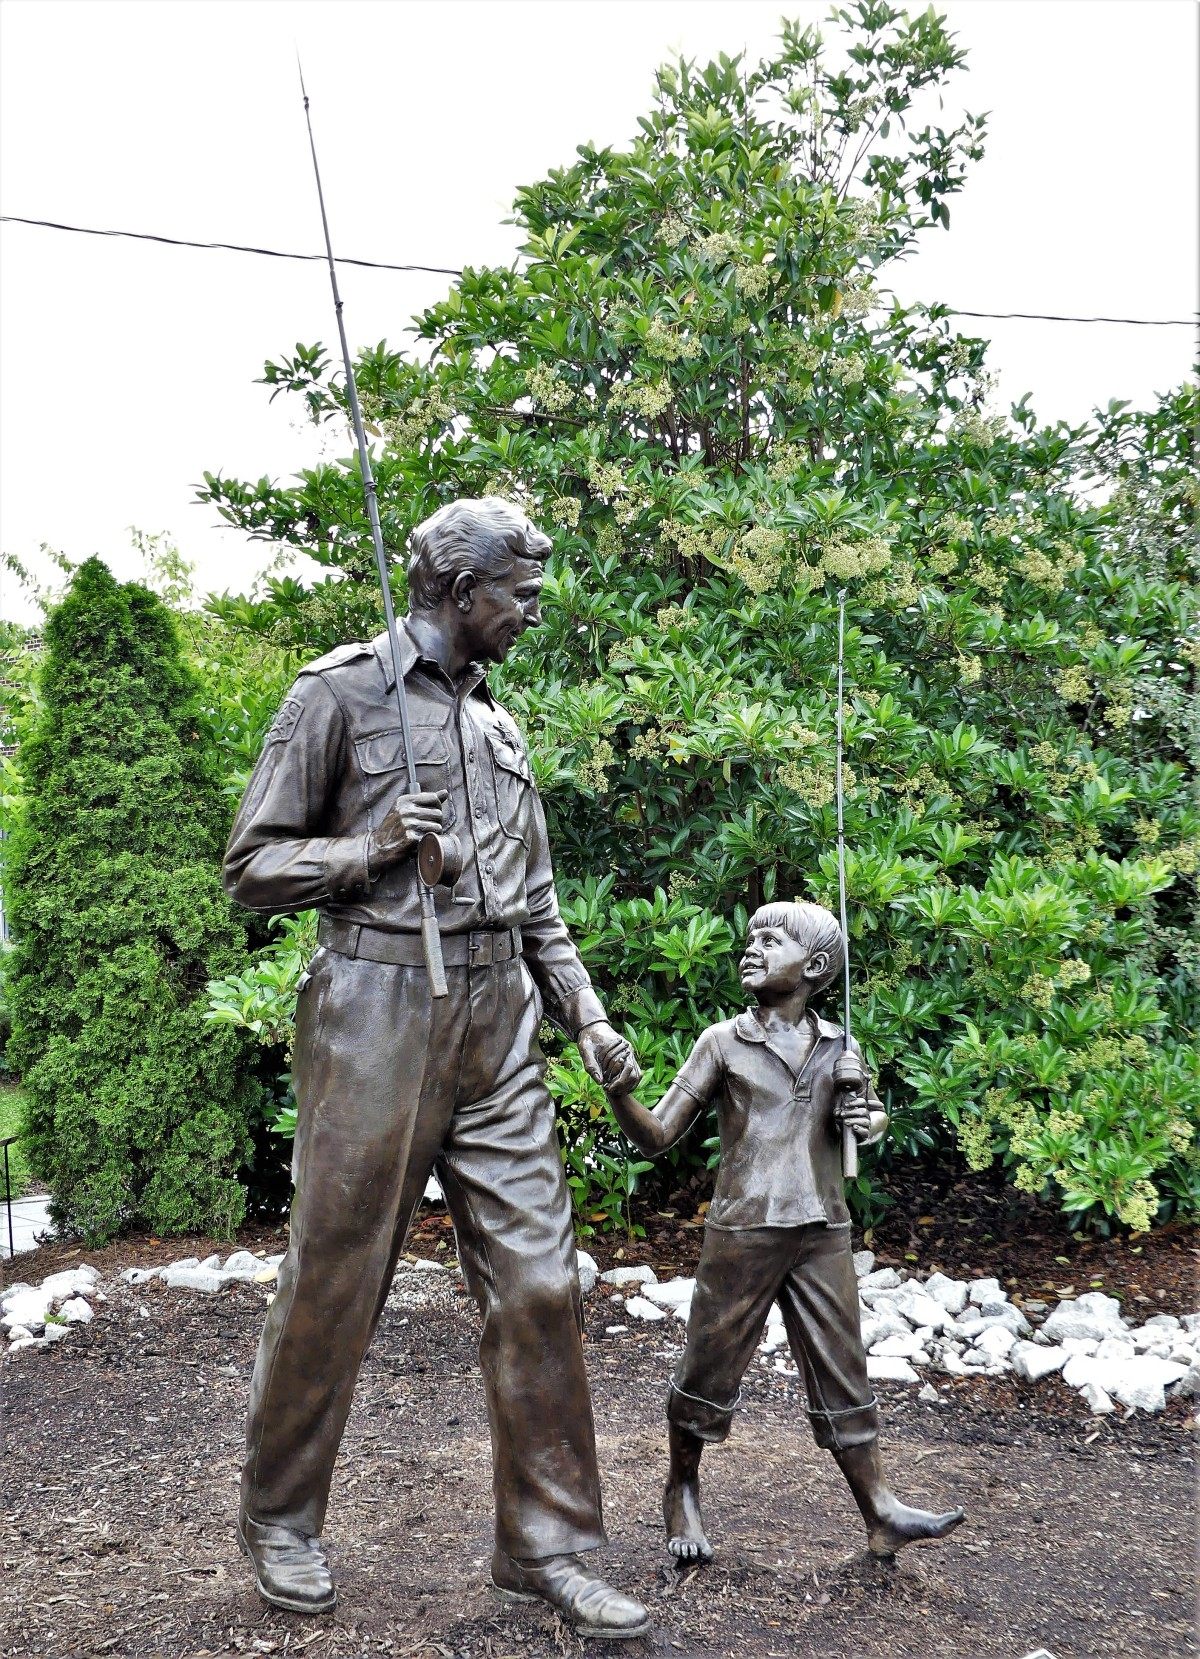 Andy and Opie going fishing sculpture